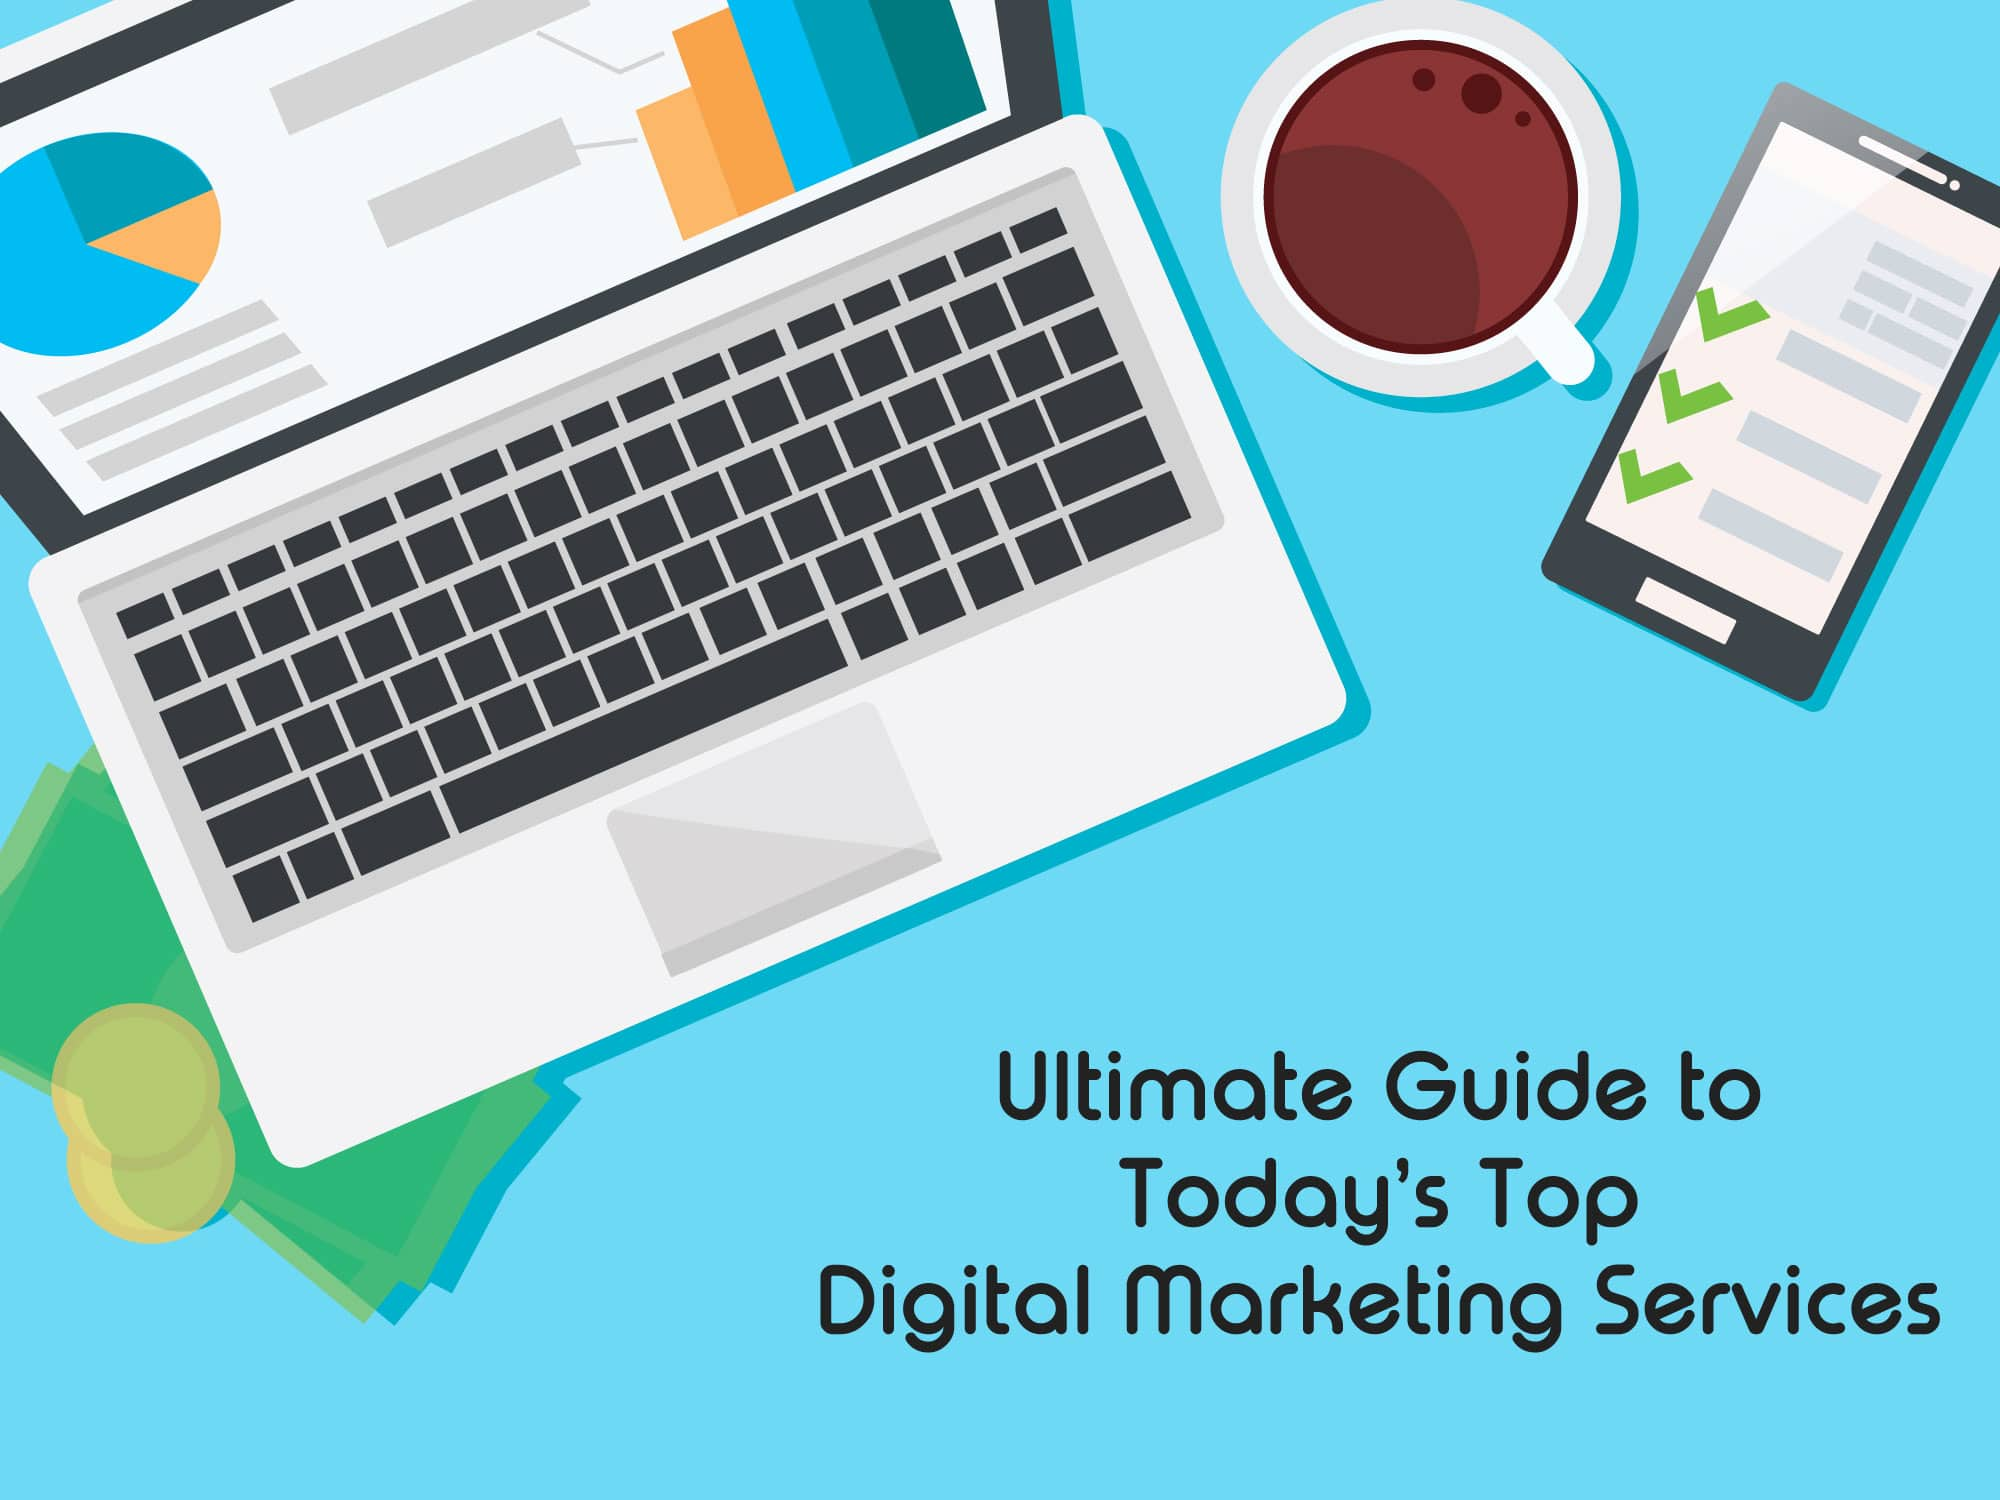 Ultimate Guide to Today's Top Digital Marketing Services